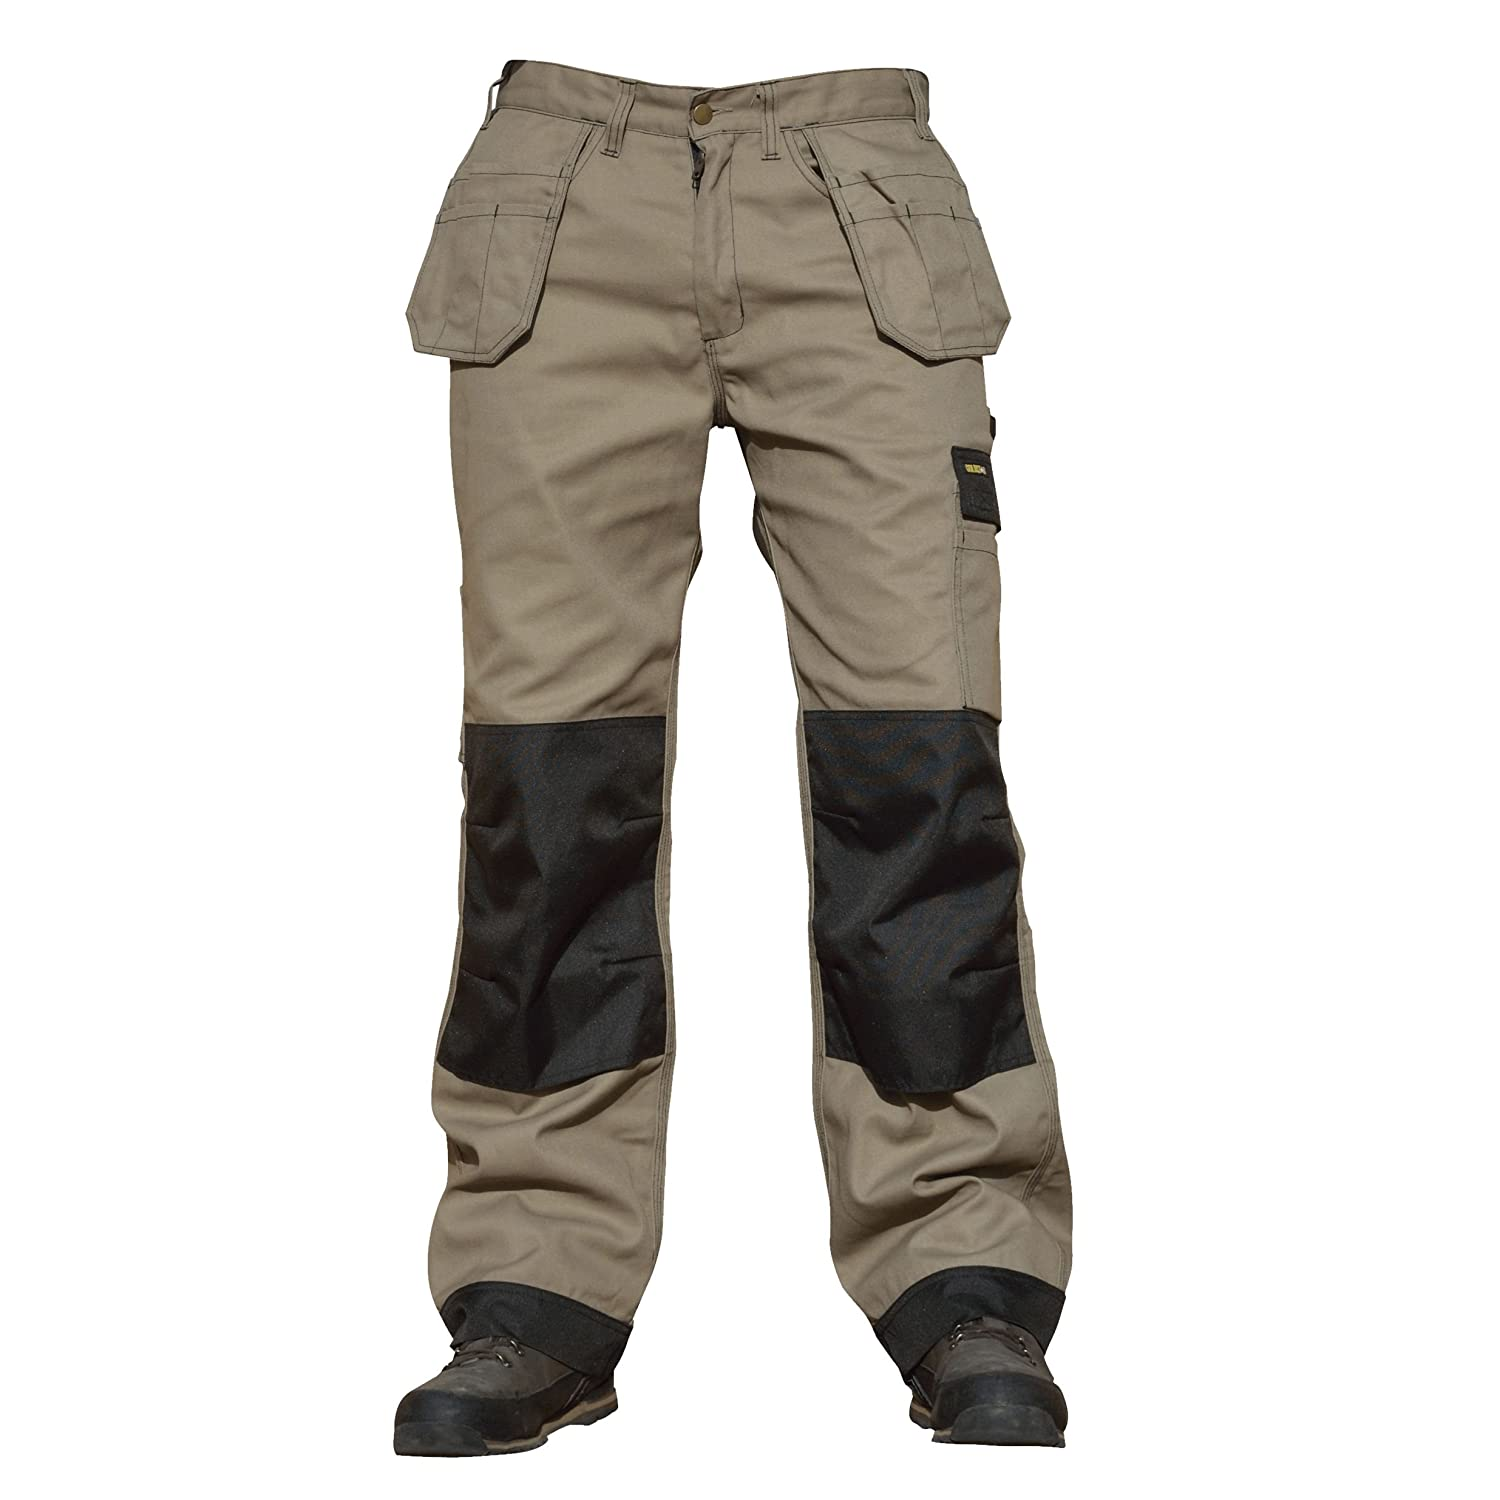 GS Workwear 32' Leg Heavy Duty Triple Stitched Tough Work Cargo Trousers with Knee Pad Pockets GL010 Portwest